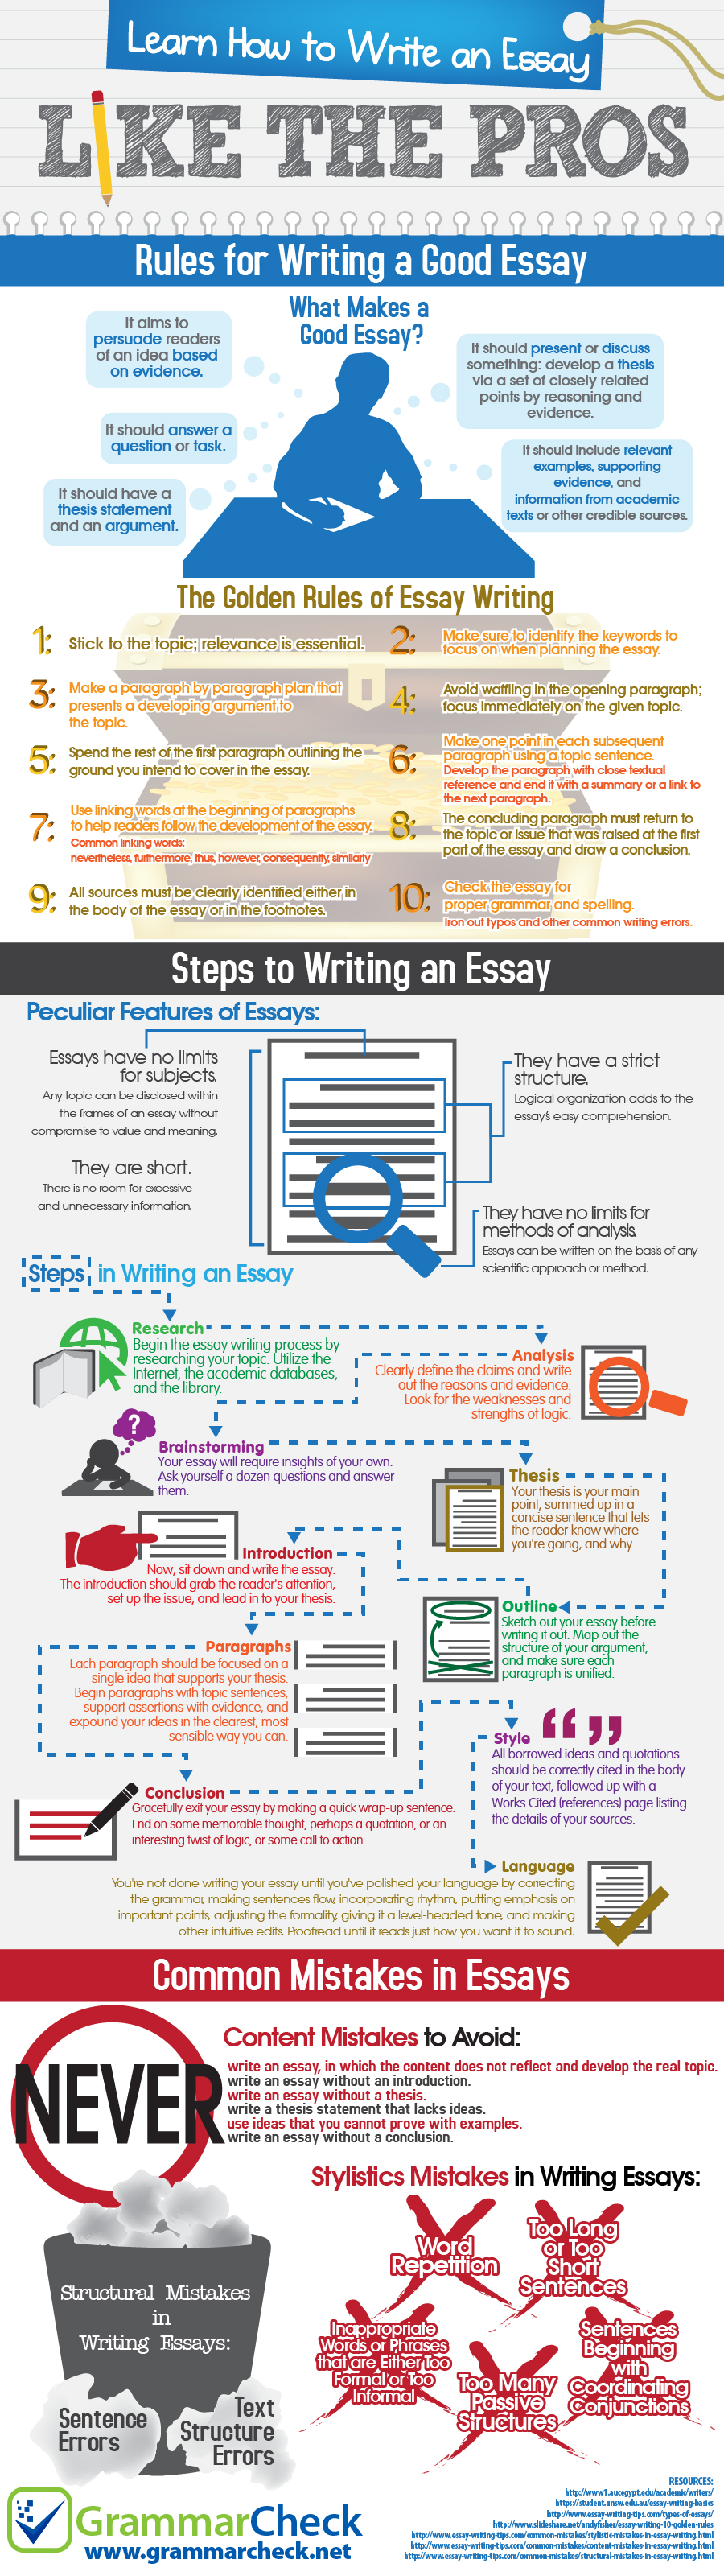 Comparative Essay Thesis Statement  Thesis Statement Argumentative Essay also Examples Of A Thesis Statement In An Essay How To Write An Essay Like The Pros Infographic Proposal Essay Format